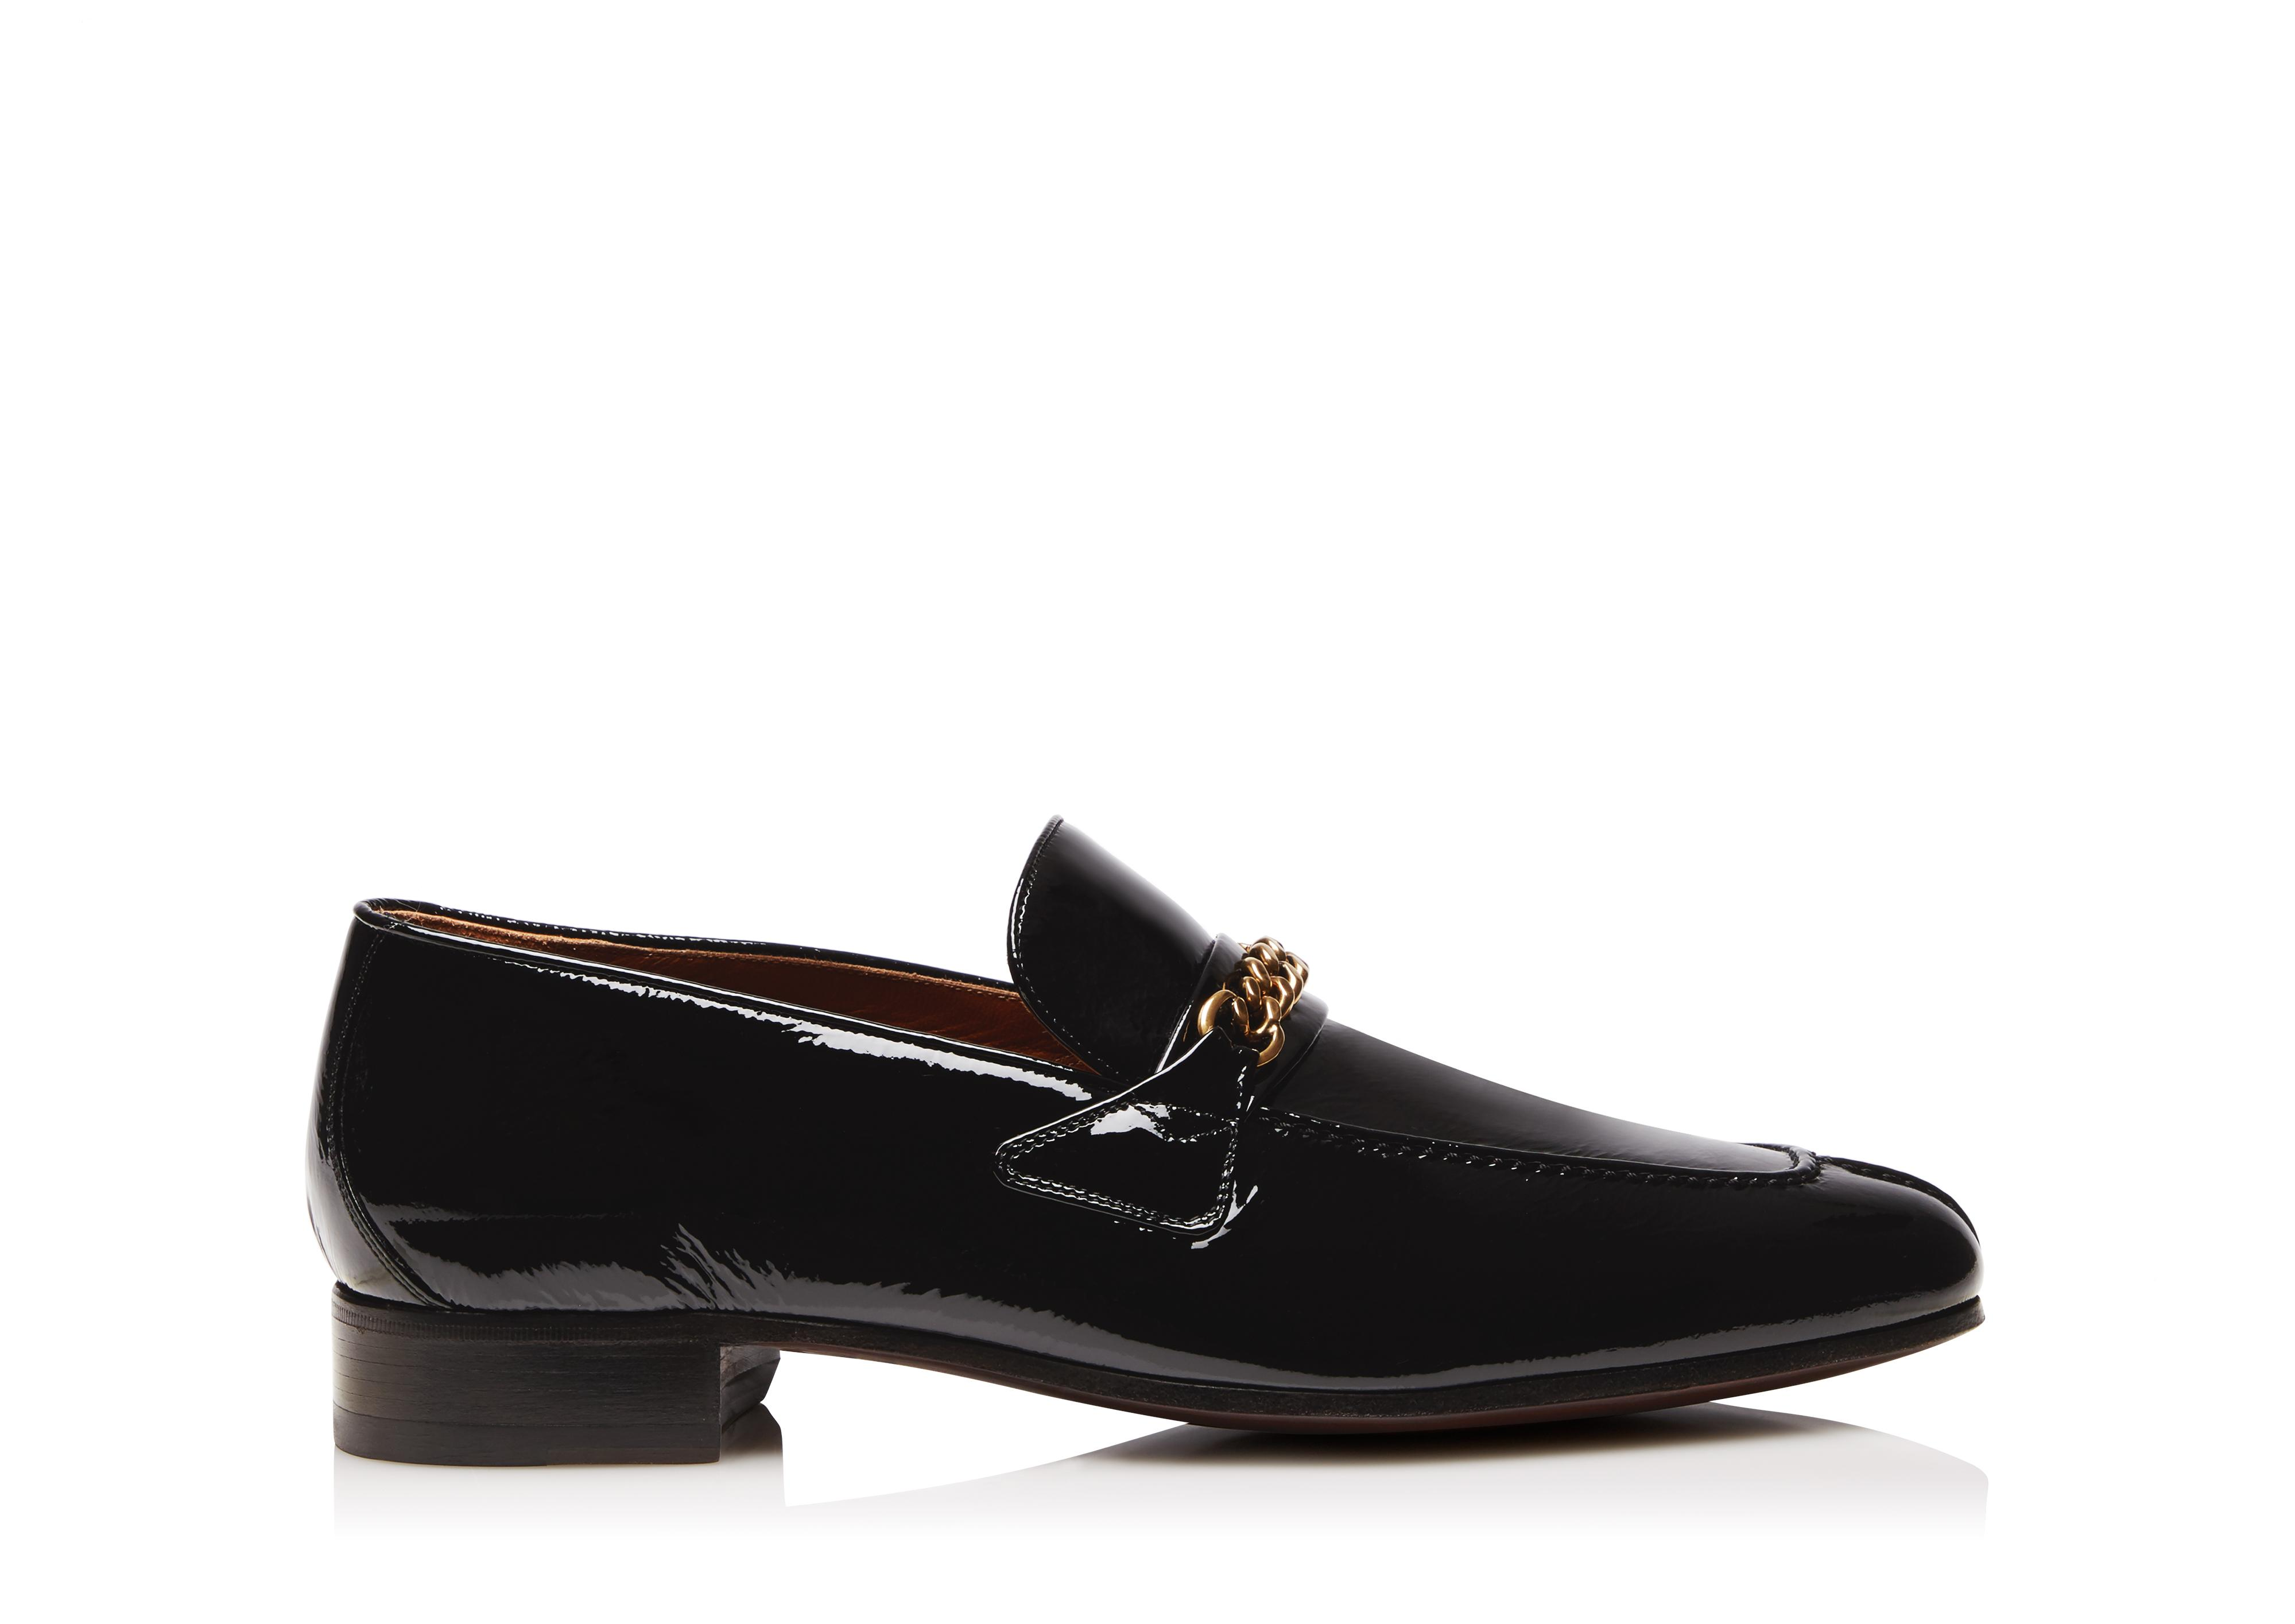 PATENT PEER CHAIN LOAFER A thumbnail